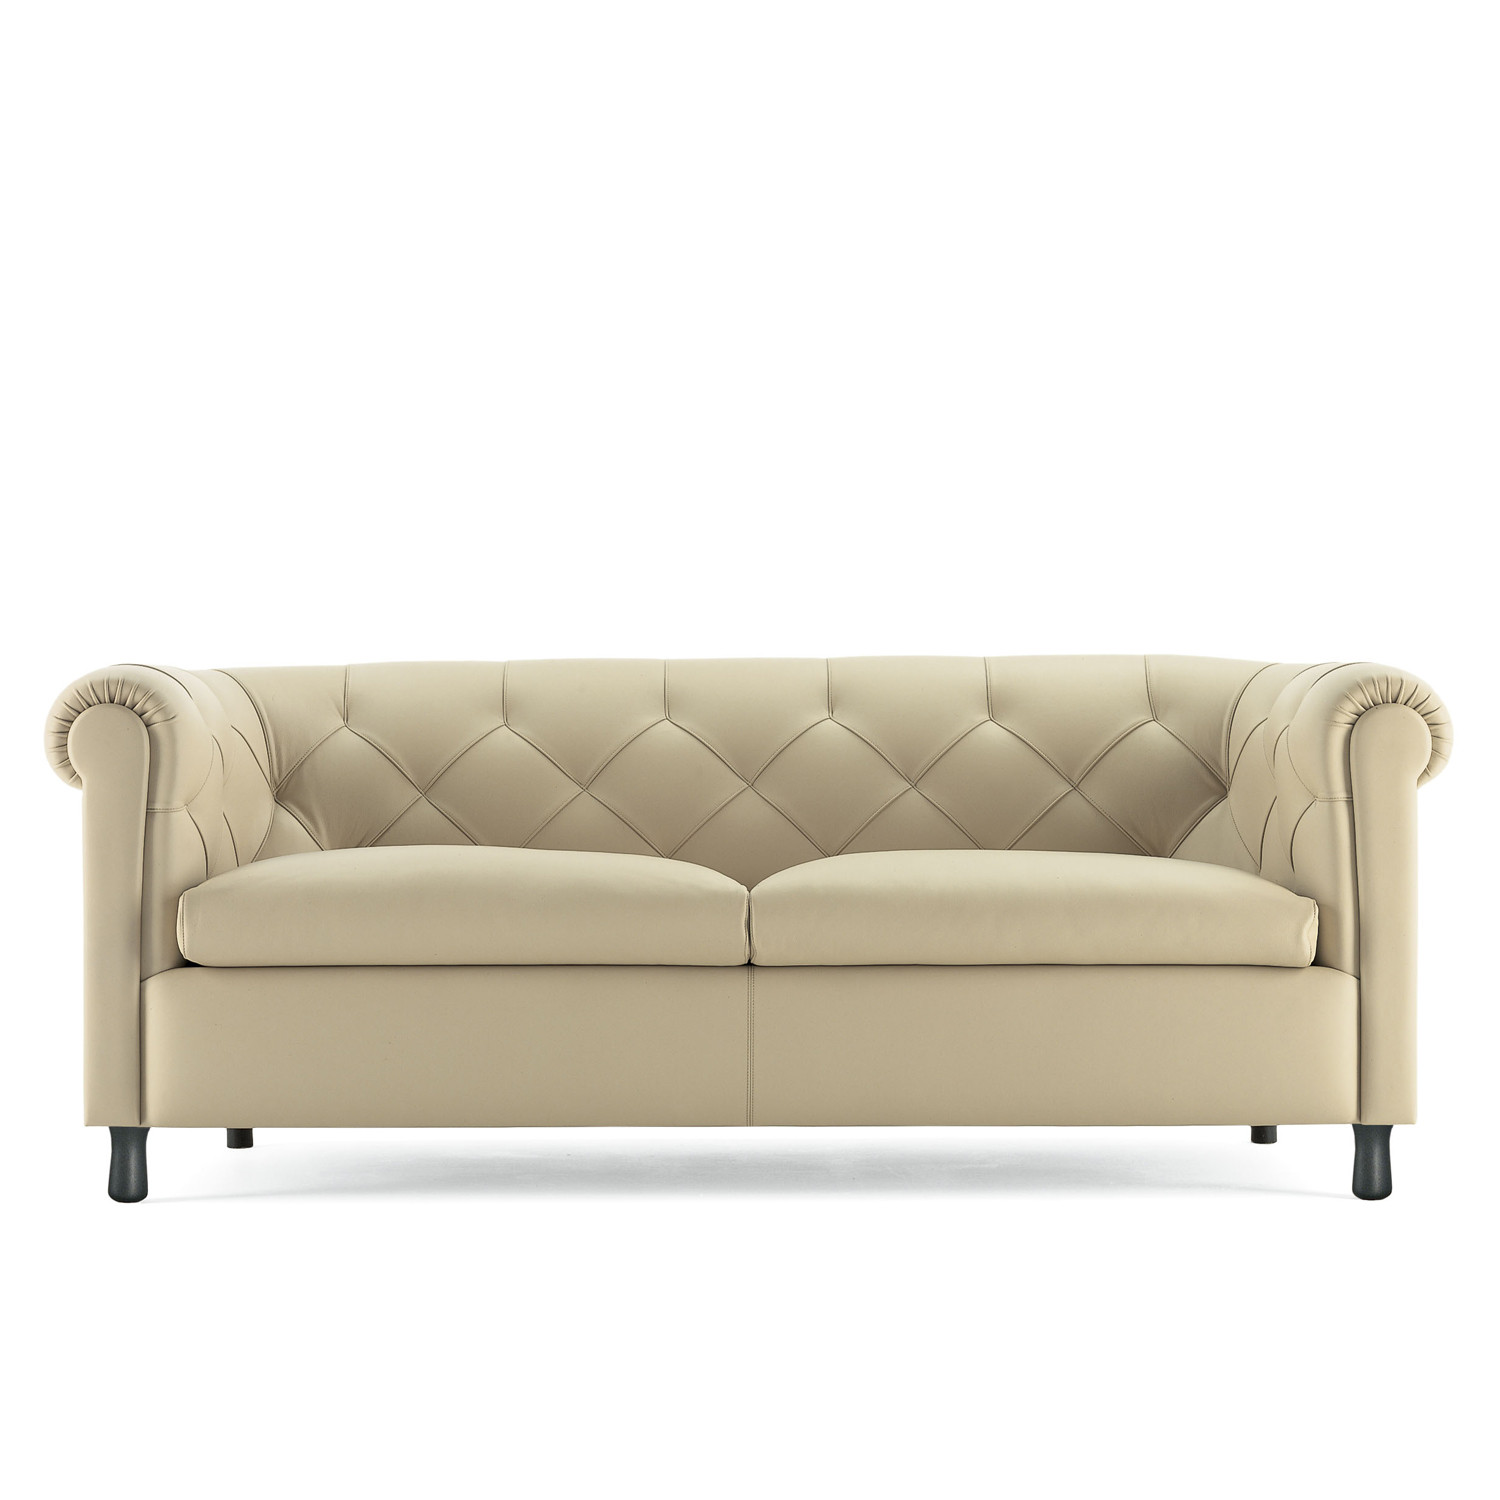 Arcadia Sofa Luxury fice Sofas